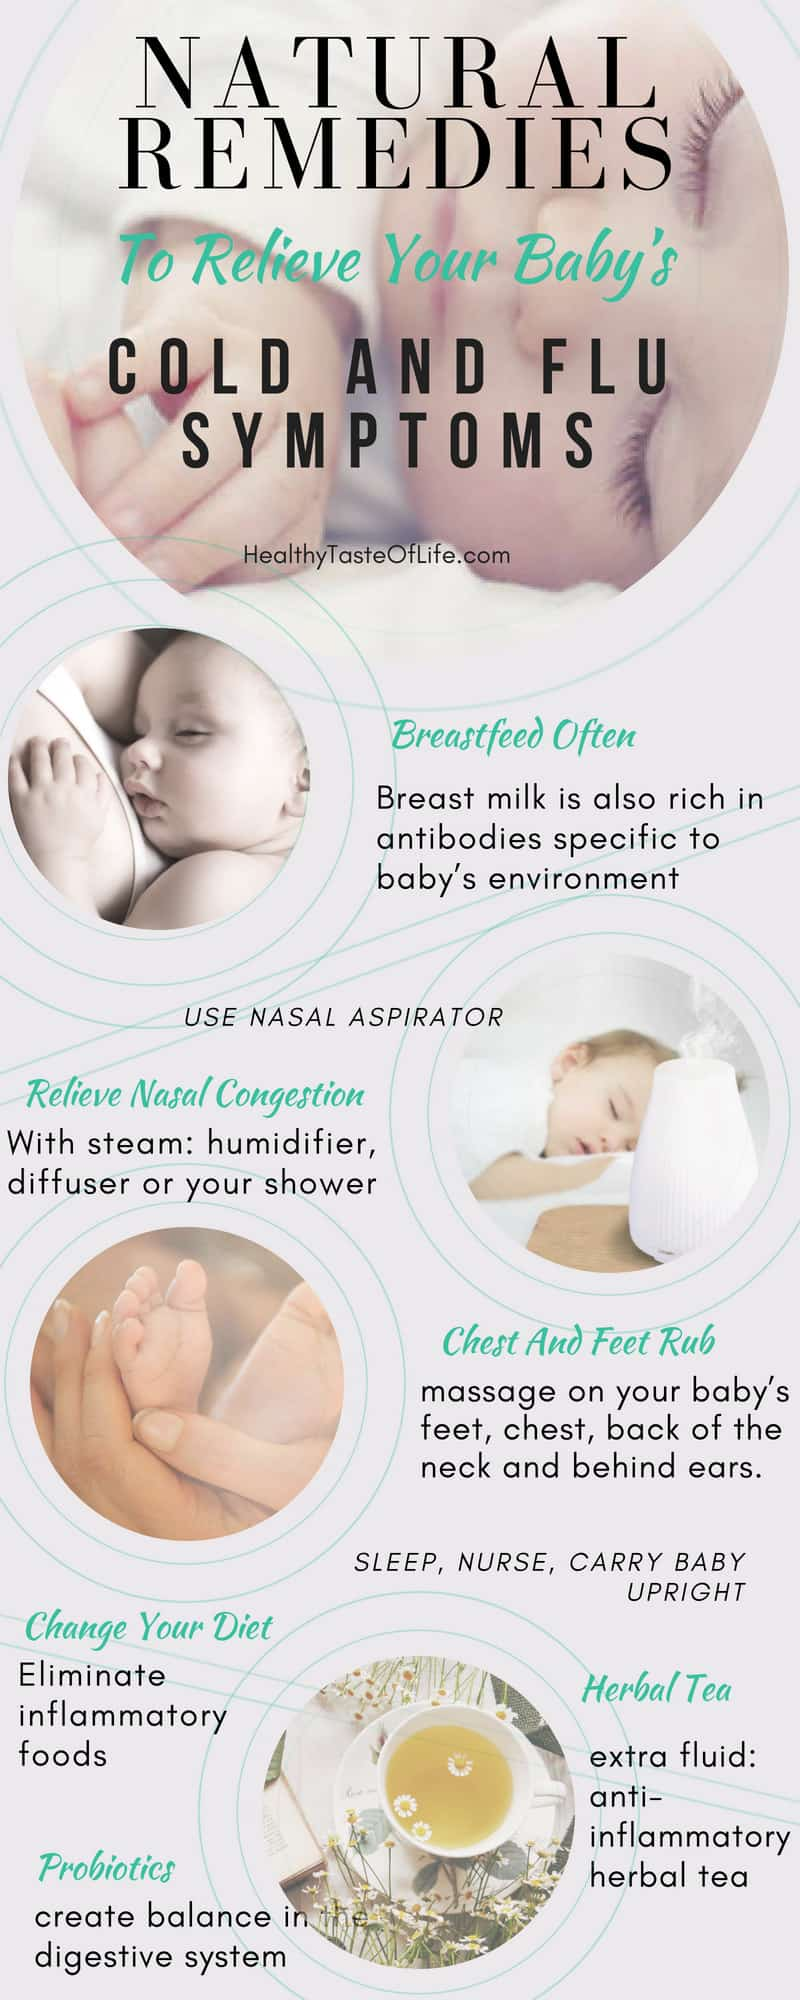 Natural Remedies To Relieve Your Baby S Cold And Flu Symptoms